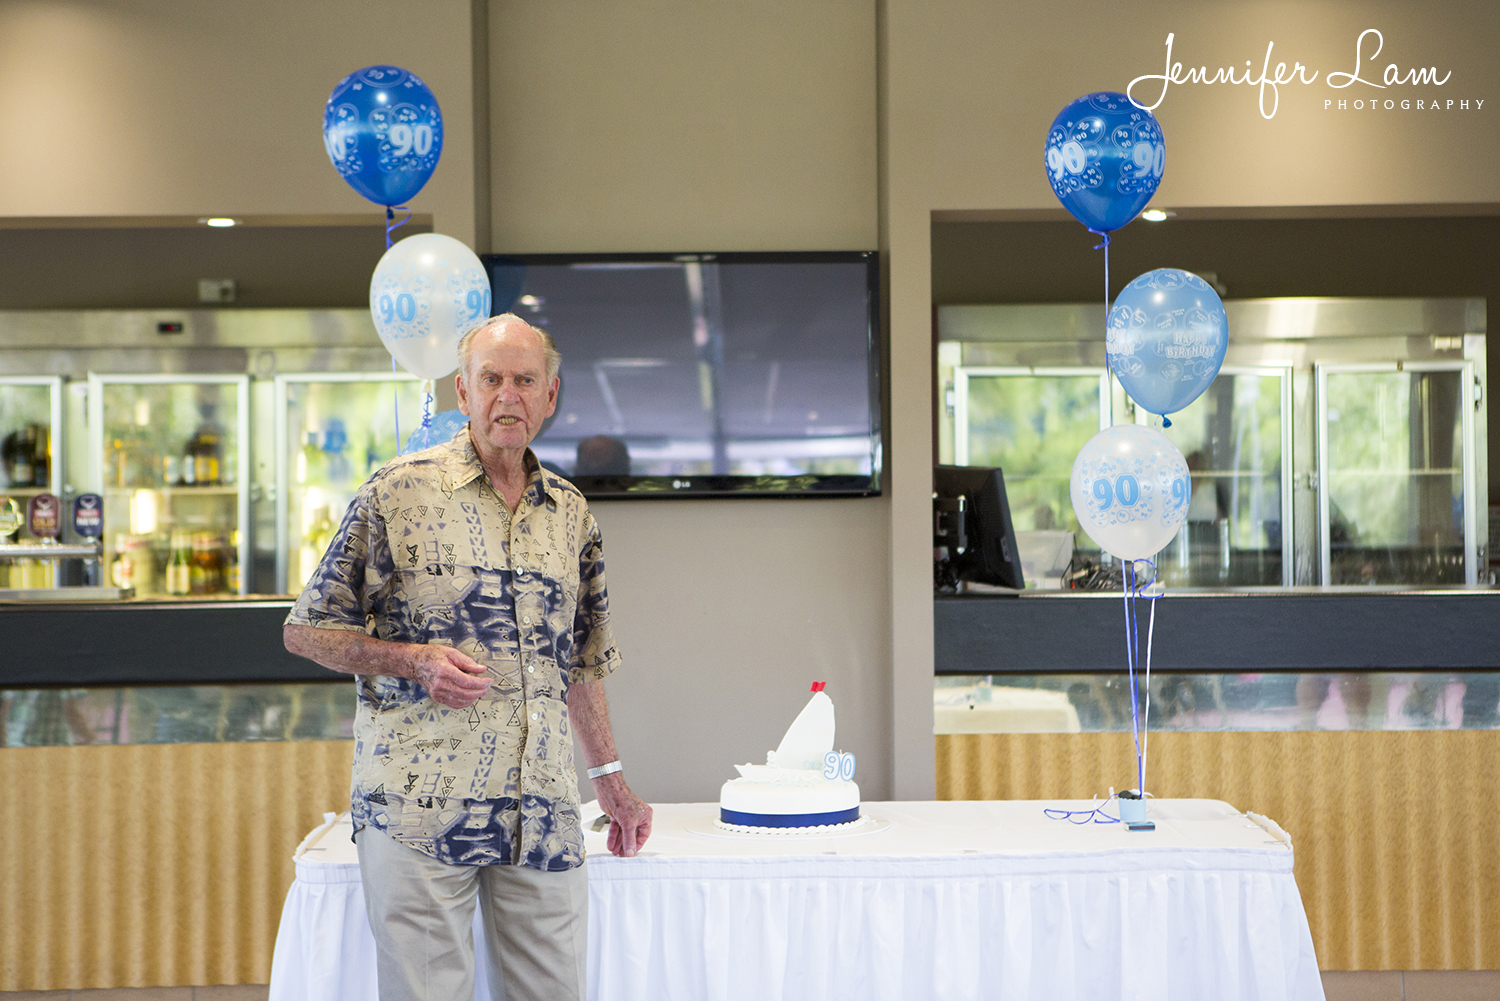 Jim's 90th Birthday - Event Photography - Jennifer Lam Photography (39).jpg